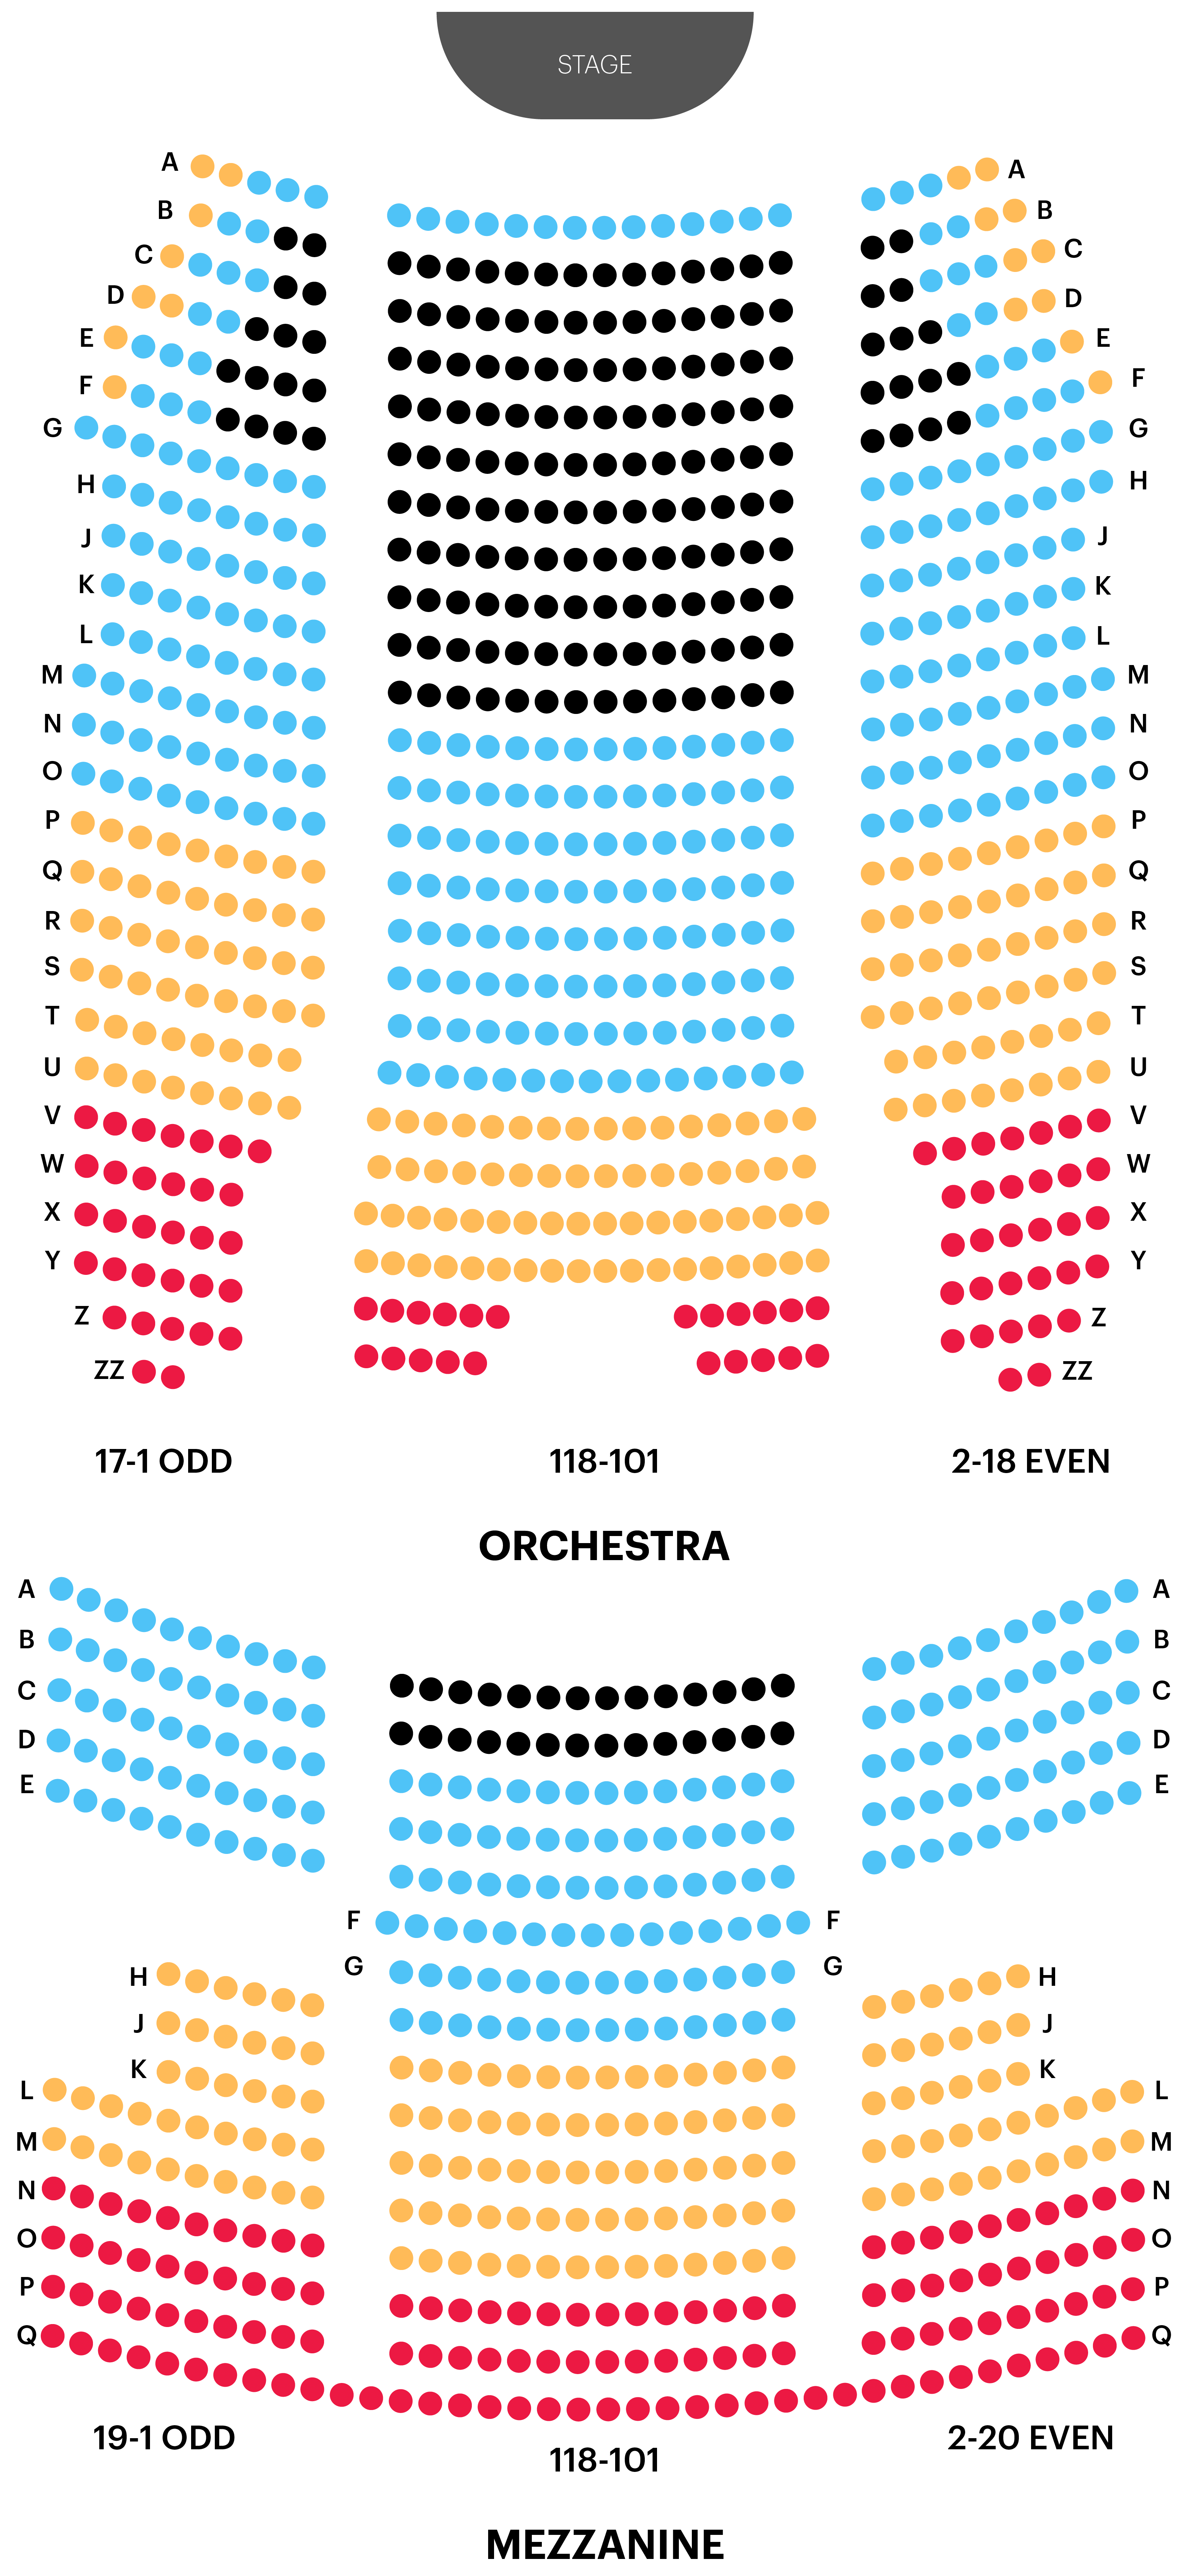 August Wilson Theatre Seating Chart Map